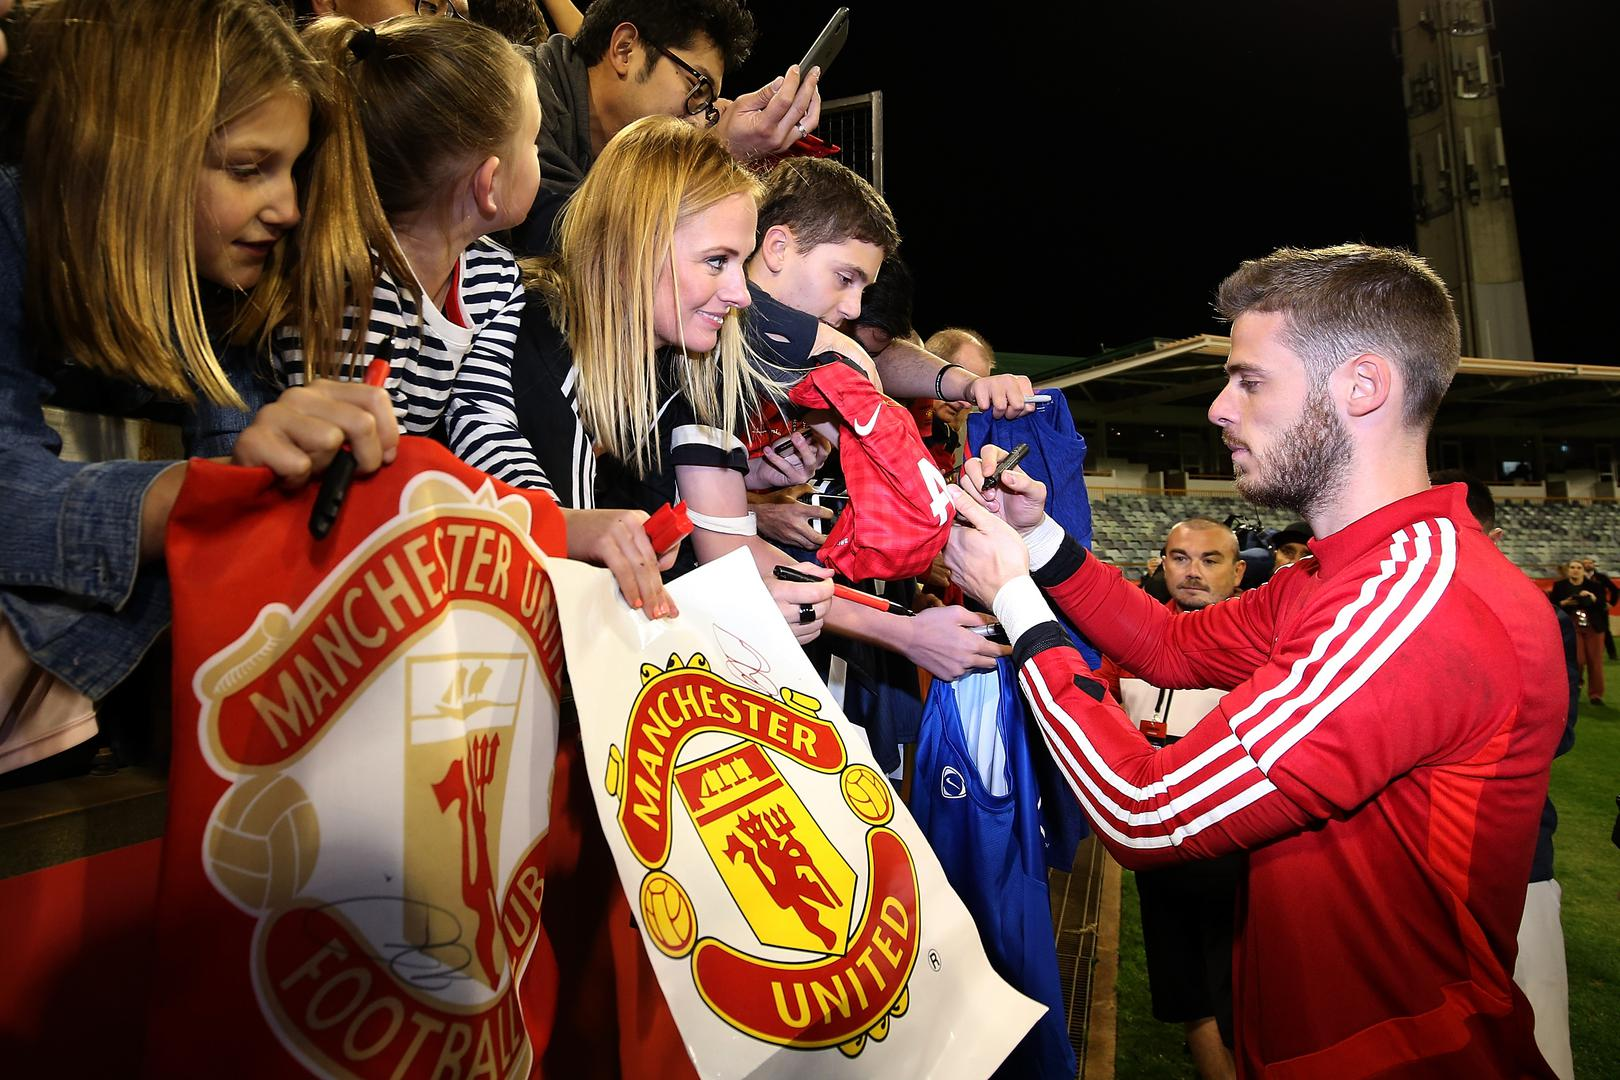 David De Gea signs autographs for Manchester United fans attending the squad's open training session at the WACA cricket ground